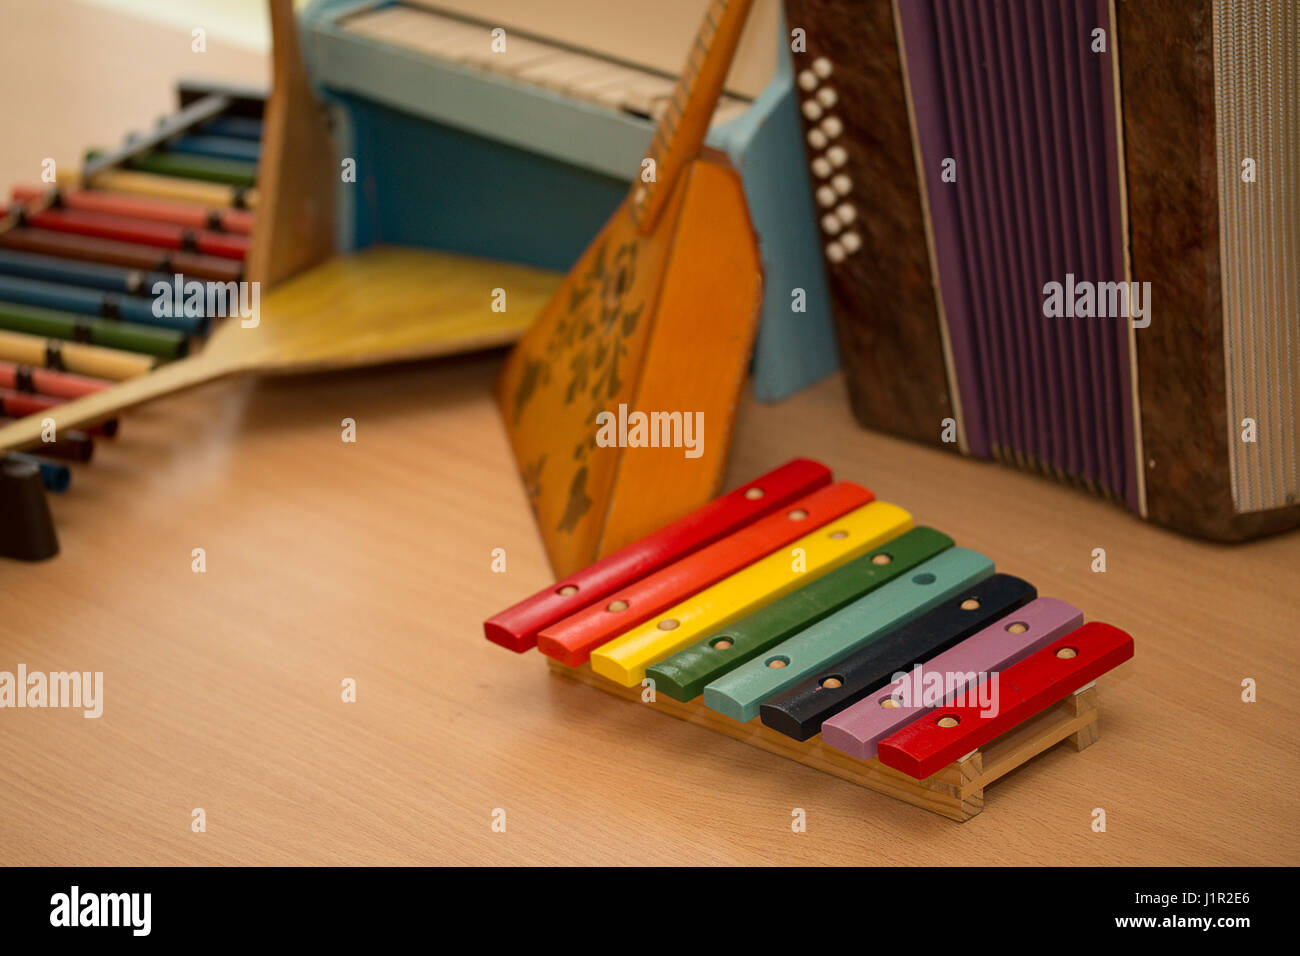 Children's toys musical instruments balalaika, accordion, harpsichord, piano - Stock Image